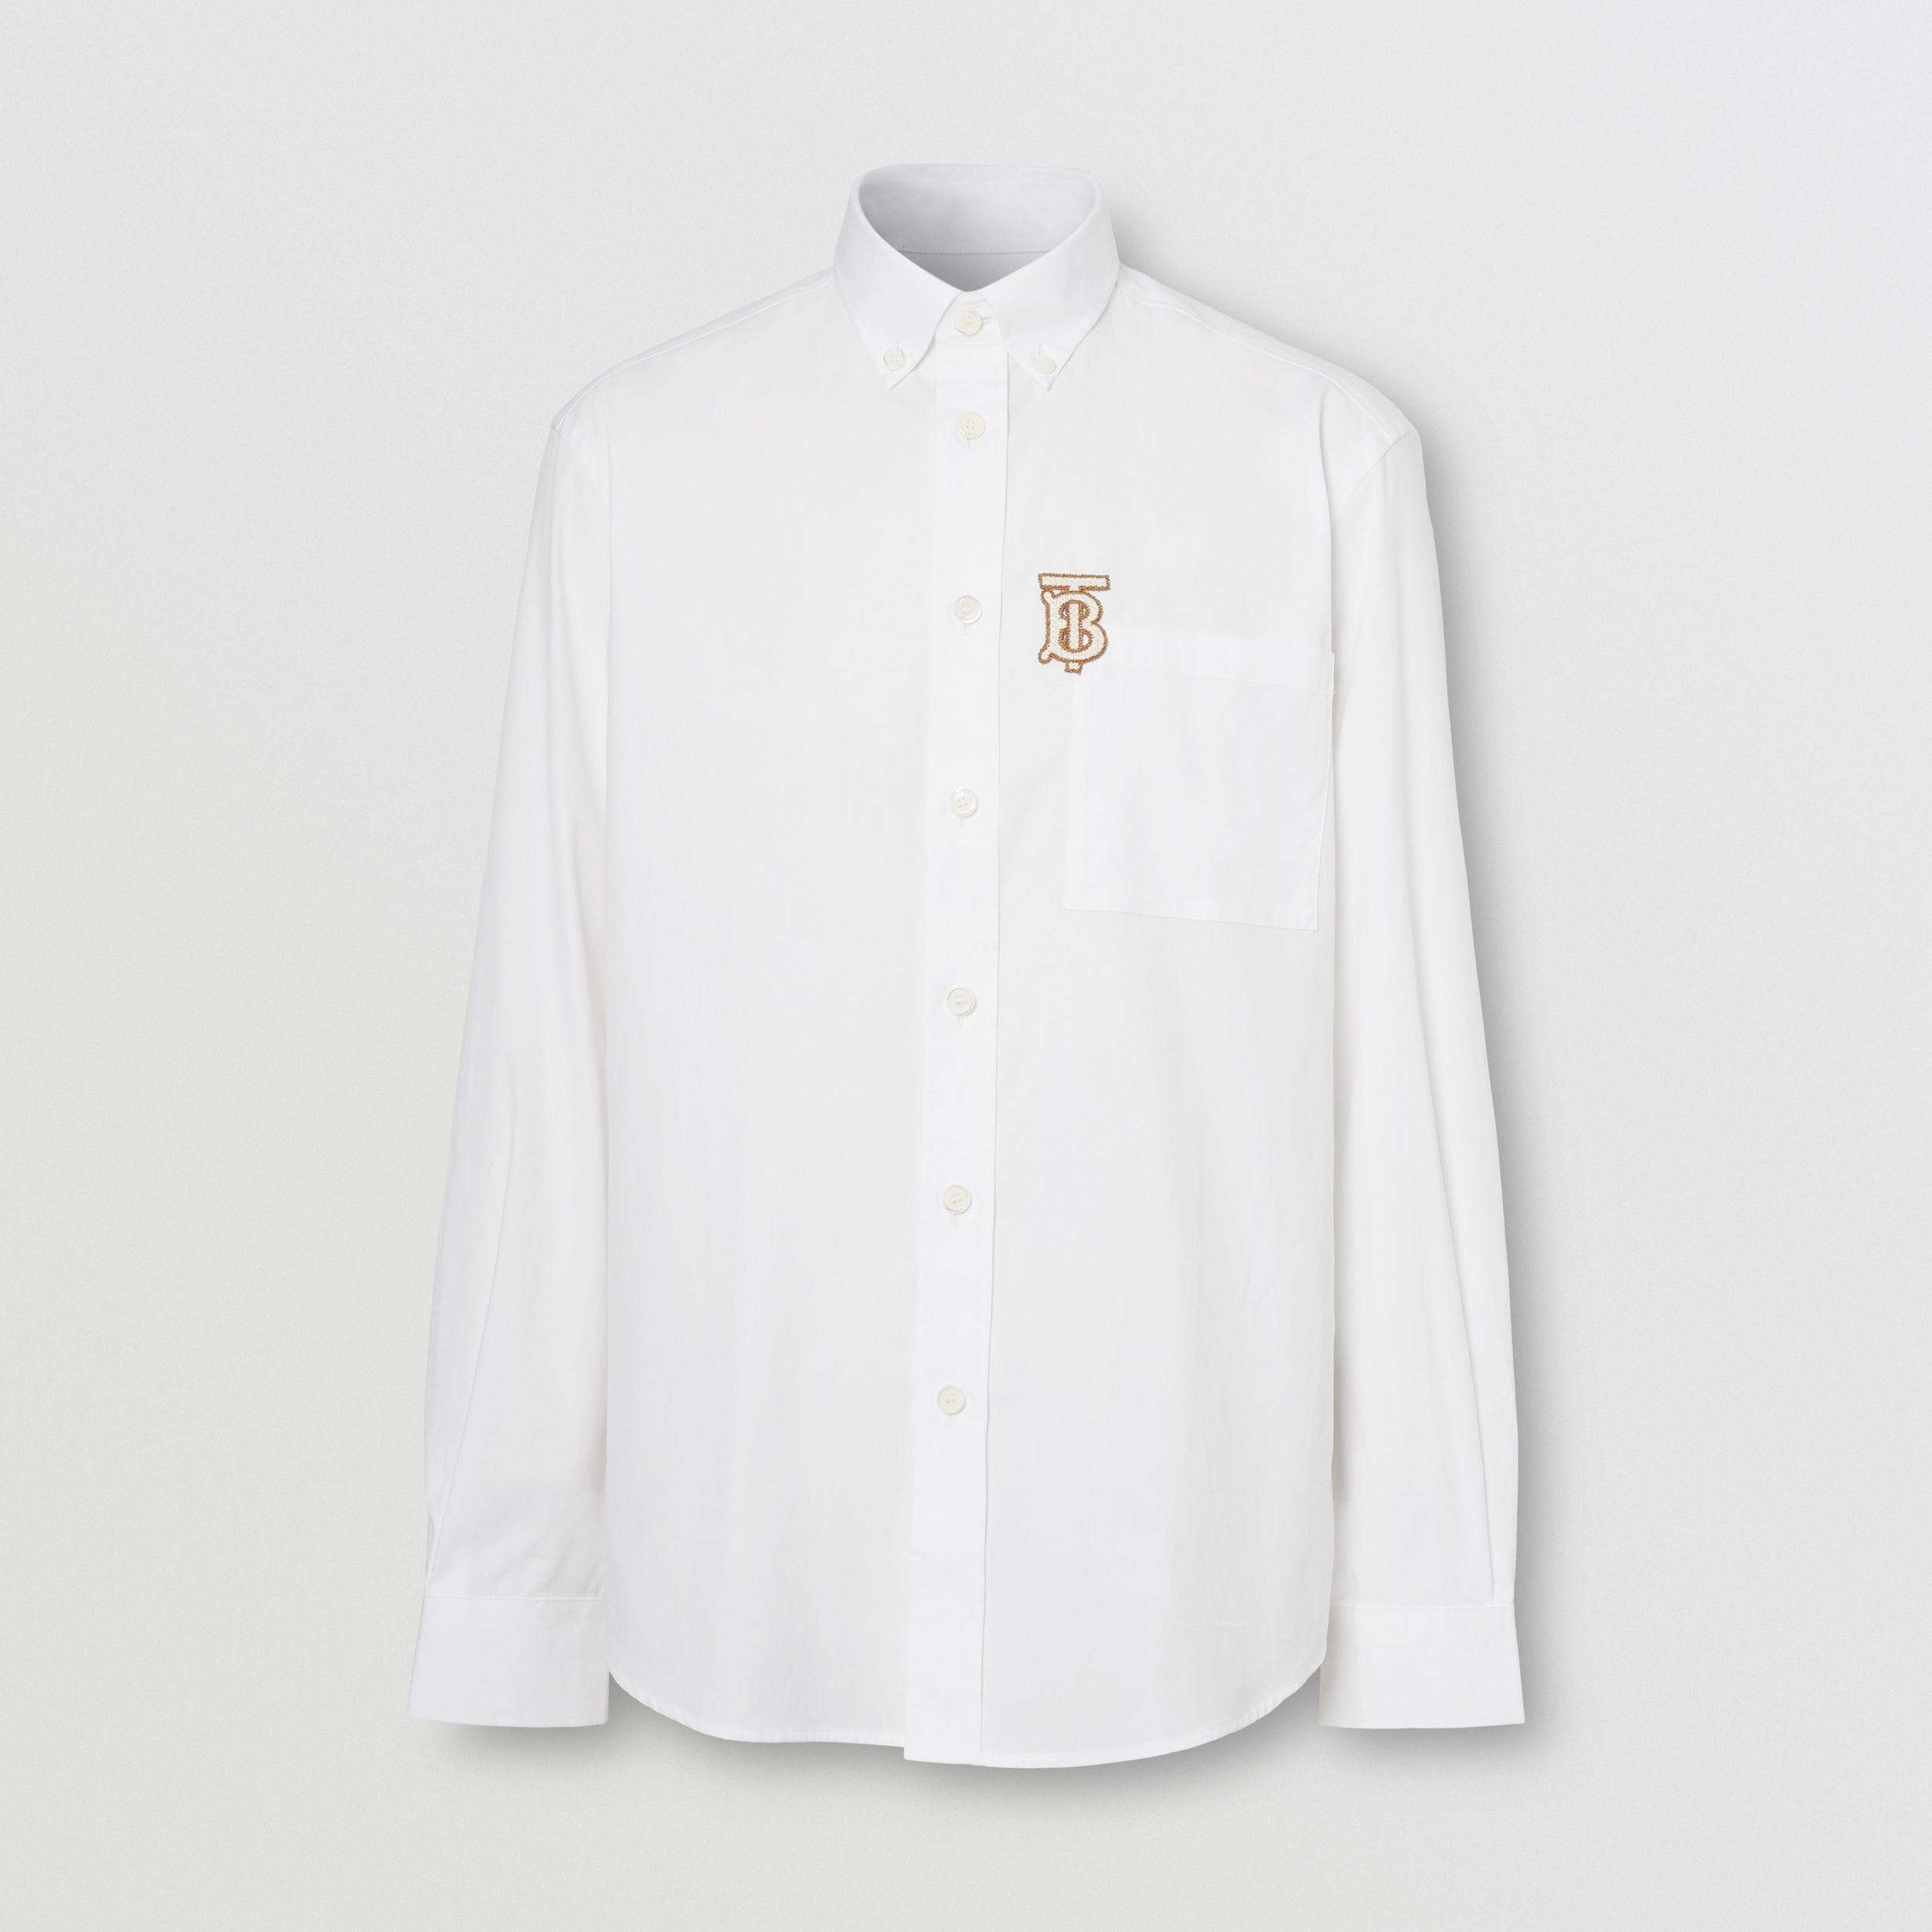 Monogram Motif Stretch Cotton Poplin Shirt in White - Men | Burberry - 4